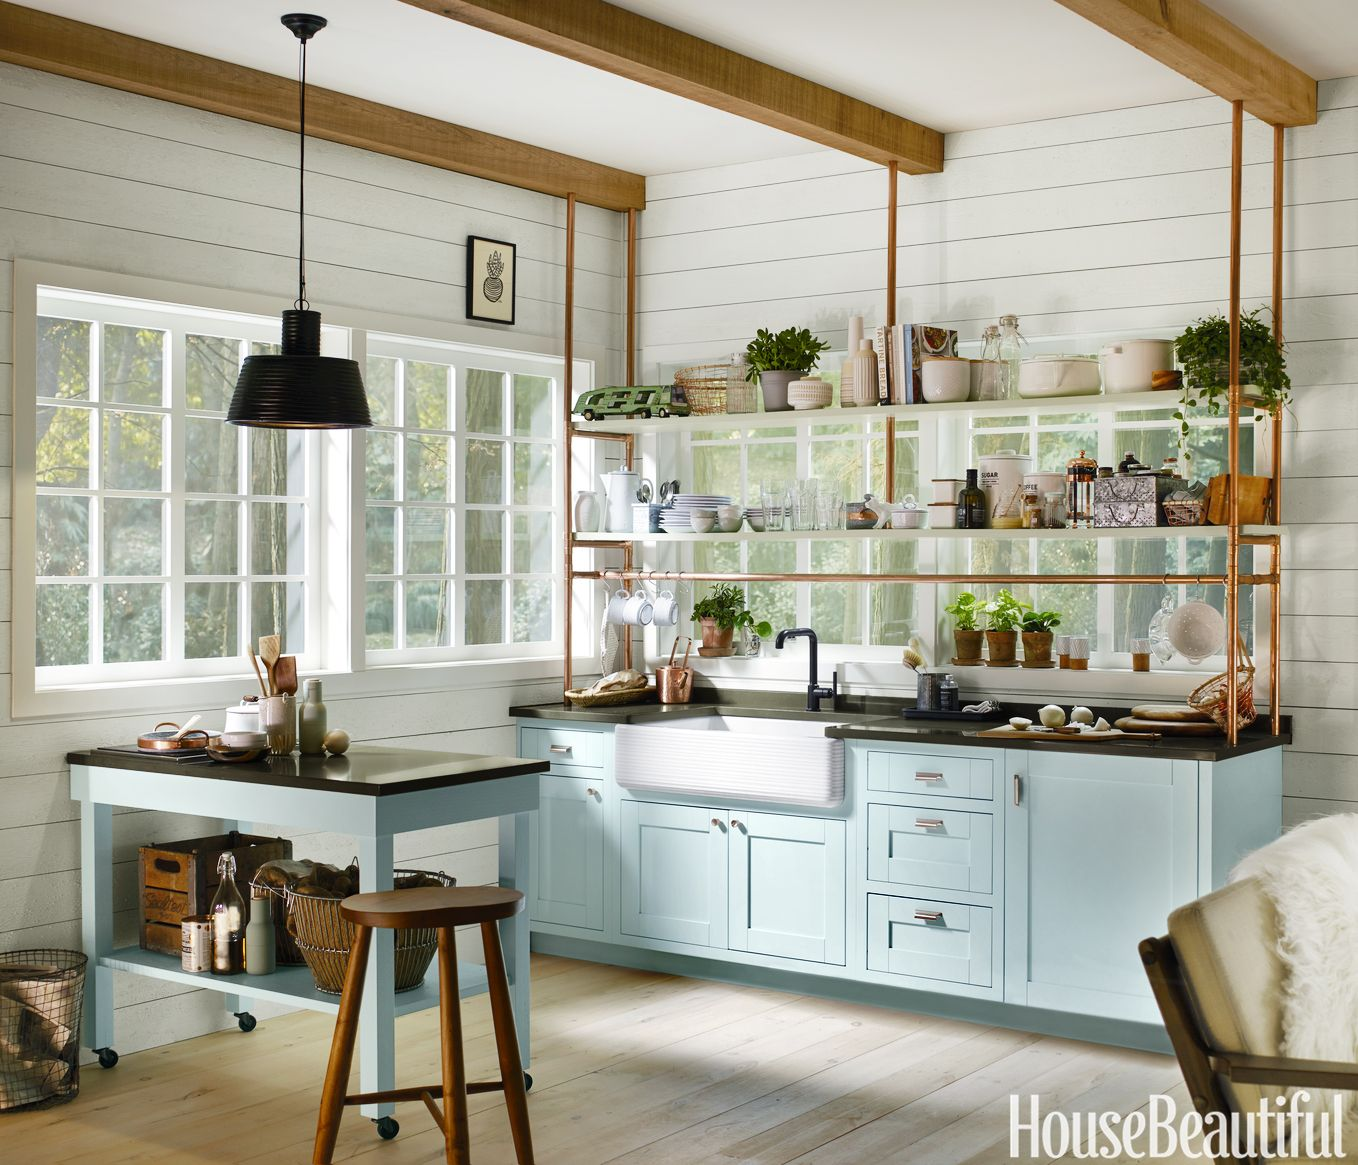 30 best small kitchen design ideas decorating solutions for small kitchens - Small House Design Ideas